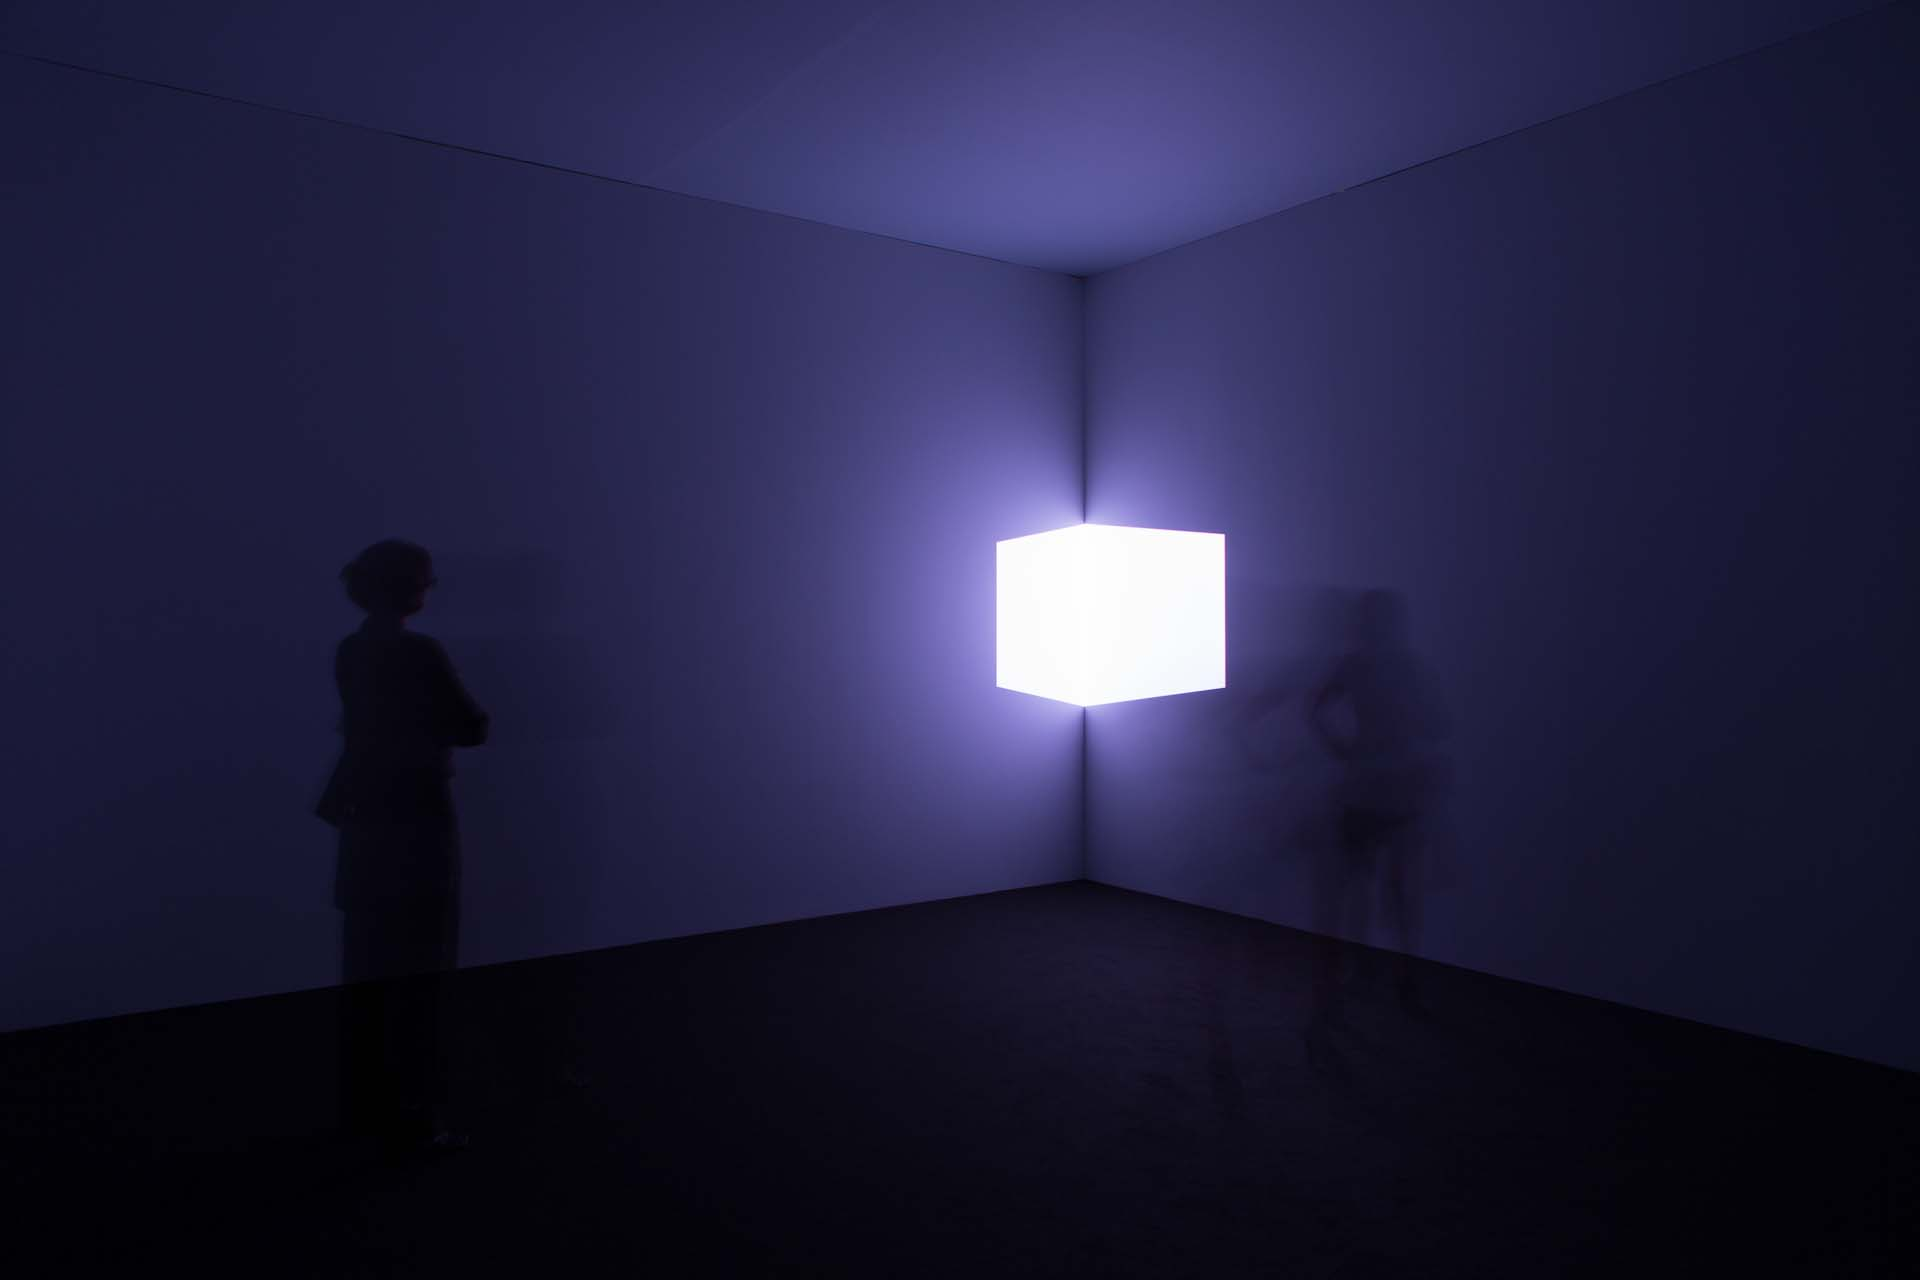 "Art Unlimited 2018: James Turrel, Catso Violet, 1967 – ""James Turrell designed Catso Violet in 1967, as part of the 'Cross Corner Projections' series. In this work, the artist created what appears to be a blue violet cube mounted in a corner of a specific space, free-floating, its source of light from a projection diagonally across the room. From a distance the shape has solidity but it is literally composed of nothing other than light. Advancing towards the work, the image eventually dissolves to the point where the viewer sees not the object, but the actual light on the wall. This piece objectifies and transforms our perceptions of light into a physically tangible material."""